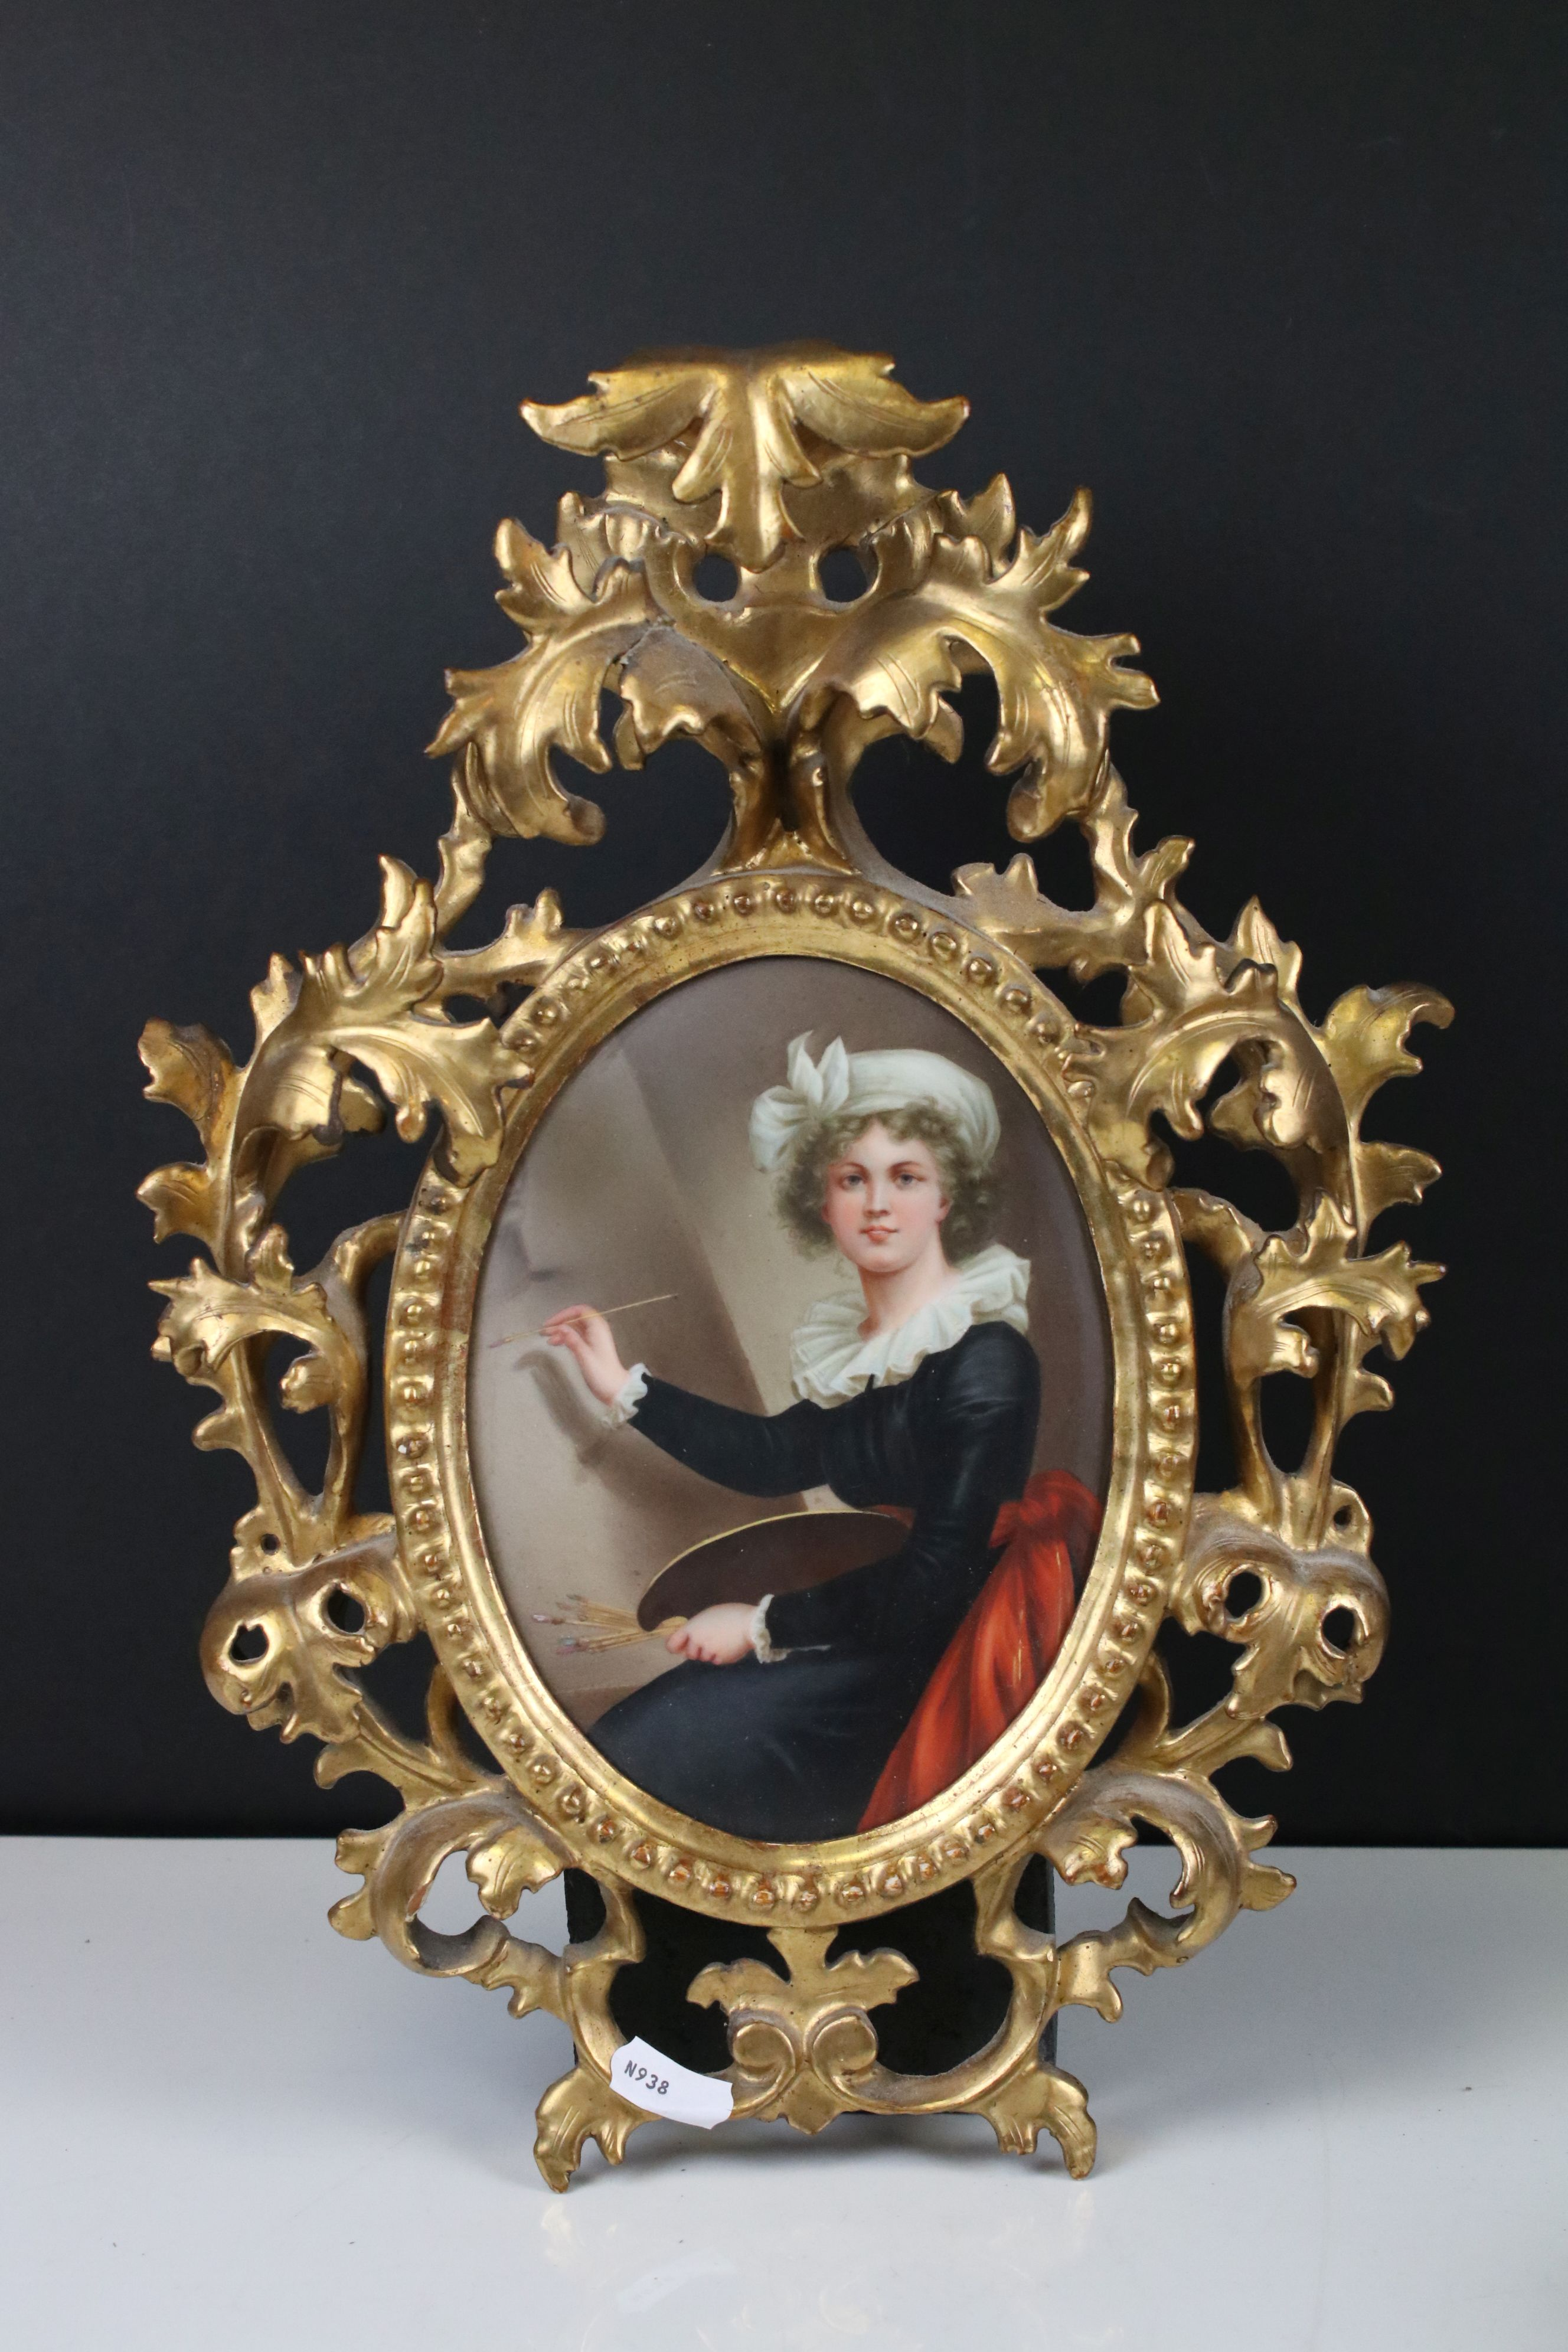 Pair of Late 19th / Early 20th century Oval Ceramic Painted Plaques, one depicting a classical woman - Image 2 of 8